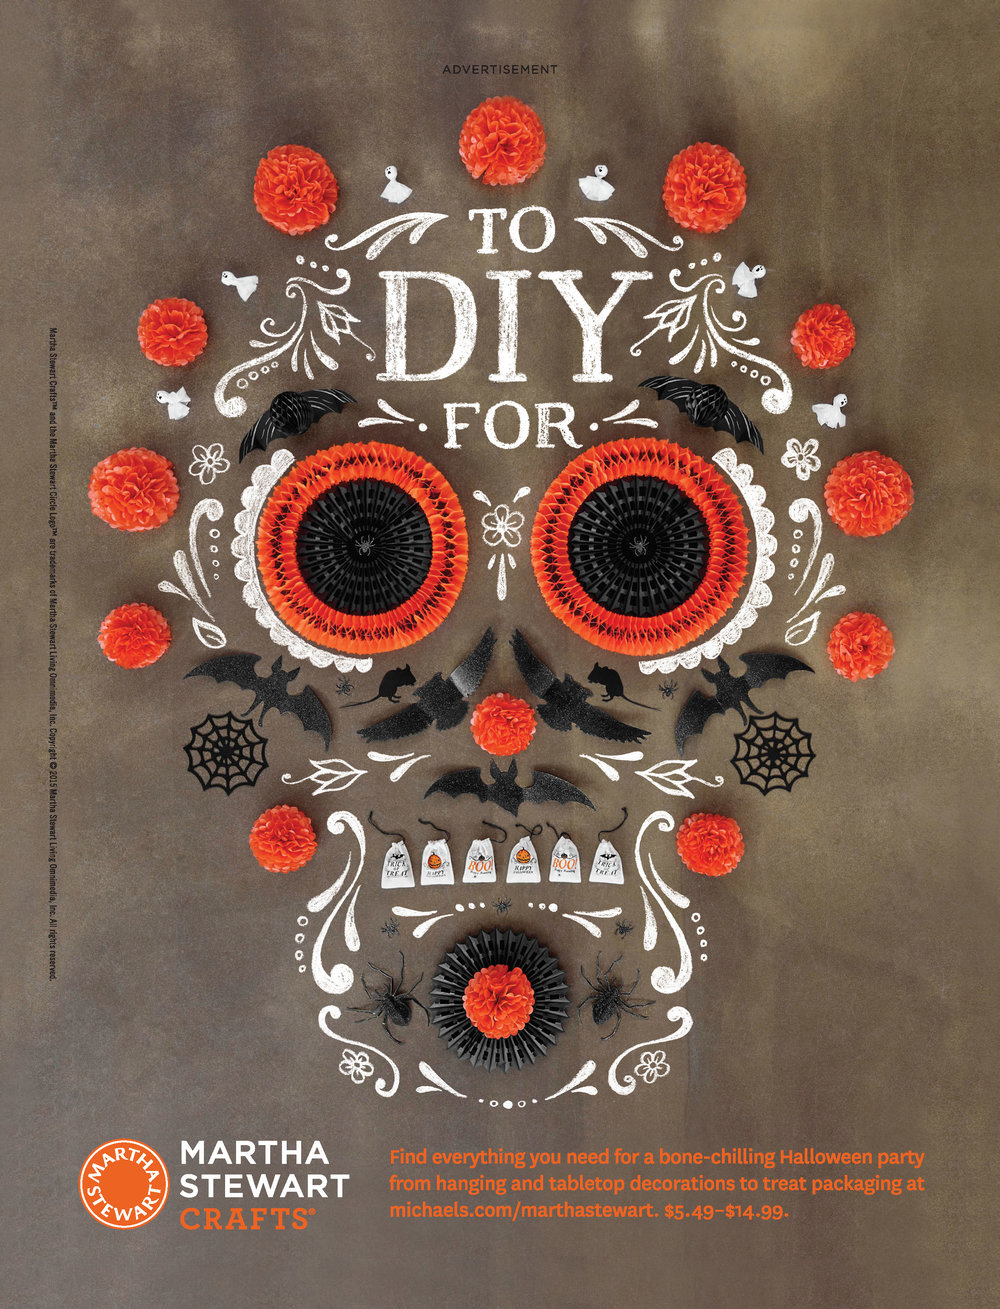 Crafts_Halloween+2015+Mag+Ad+_MSL_8.25x10.875_Final_New1.jpg